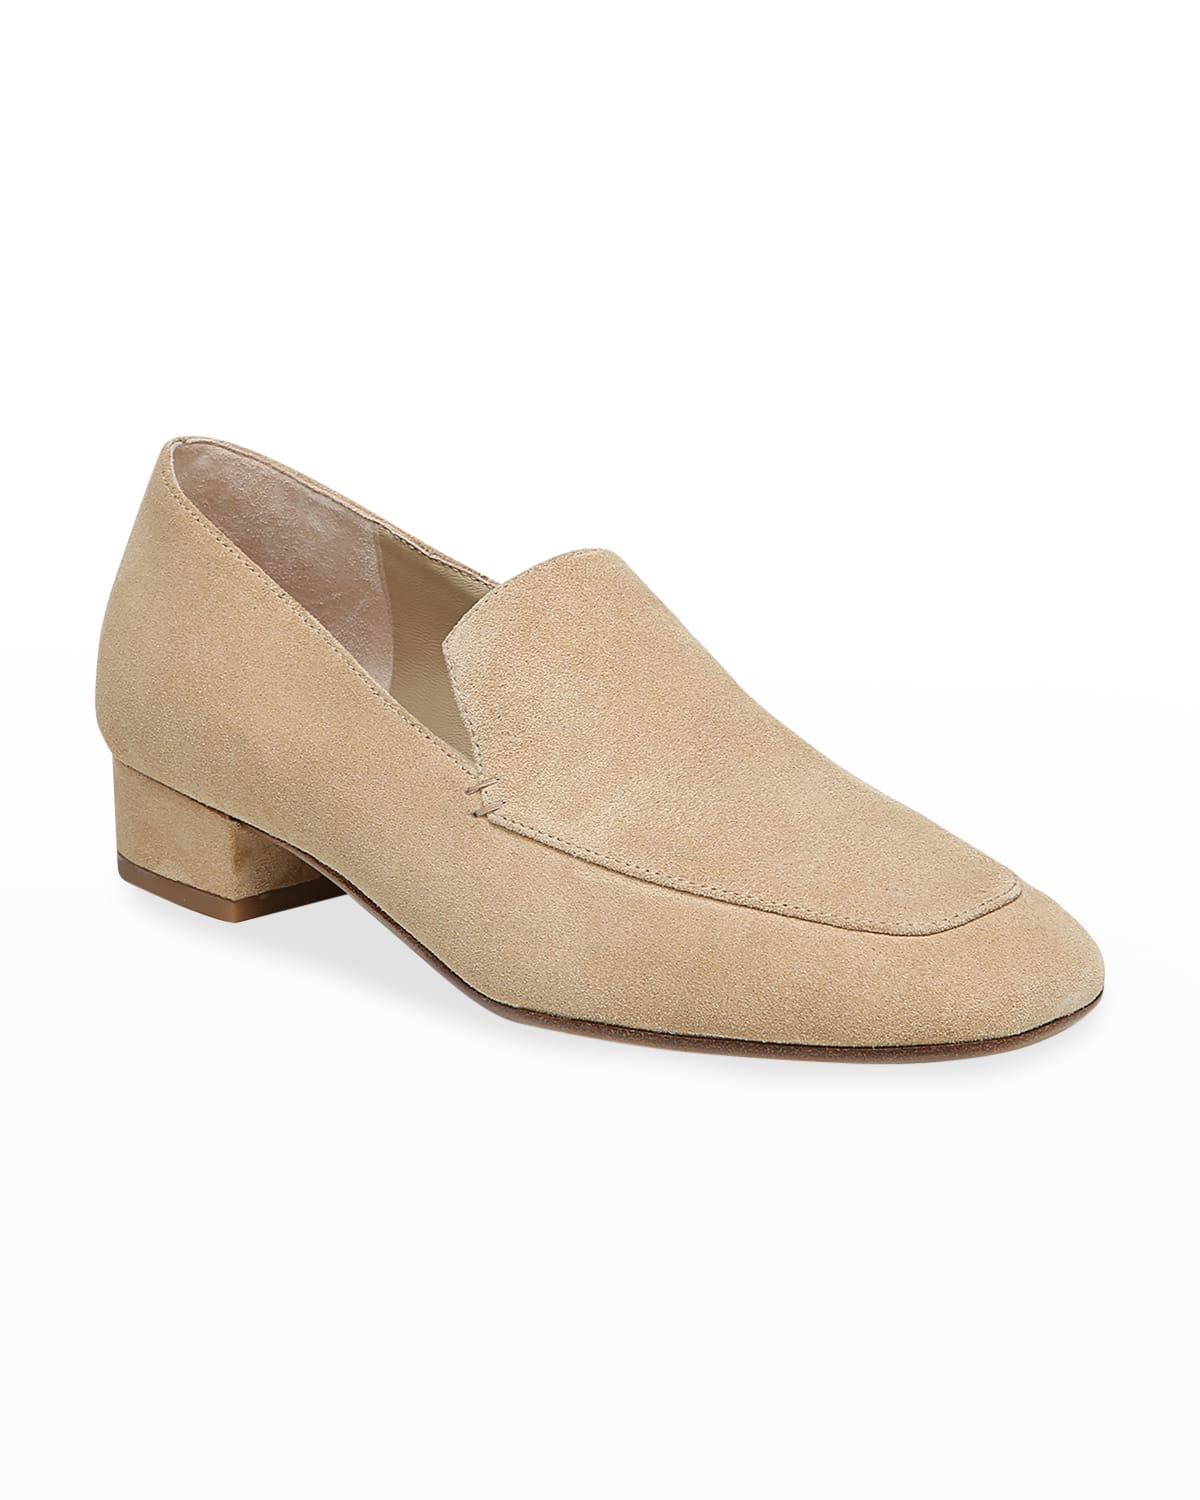 Fauna Suede Slip-On Loafers